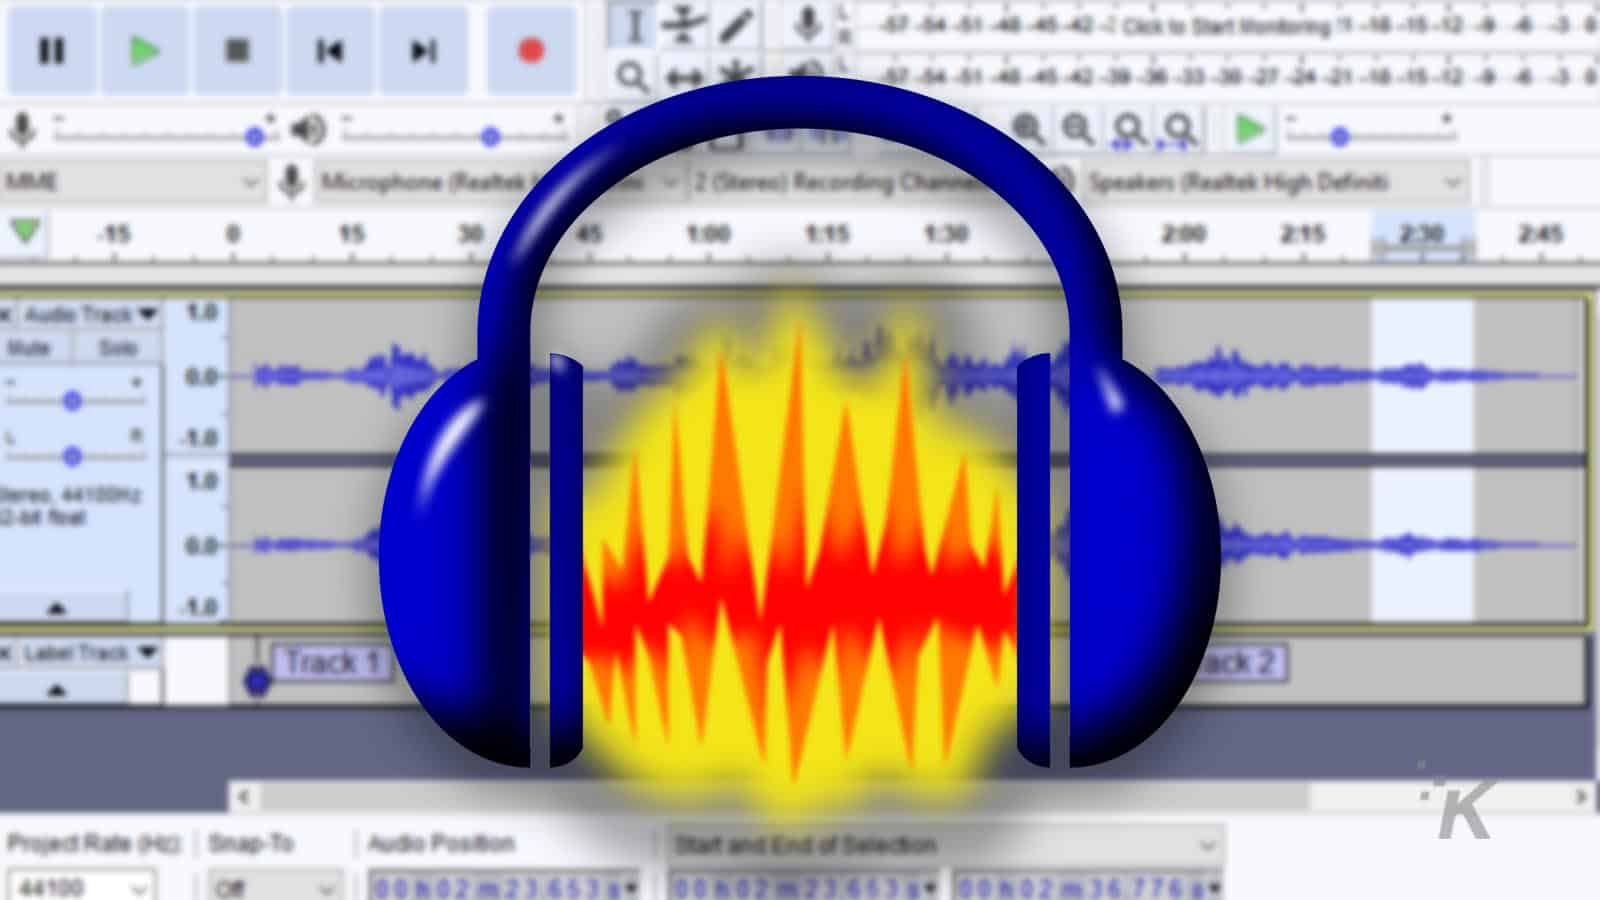 audacity logo with blurred background